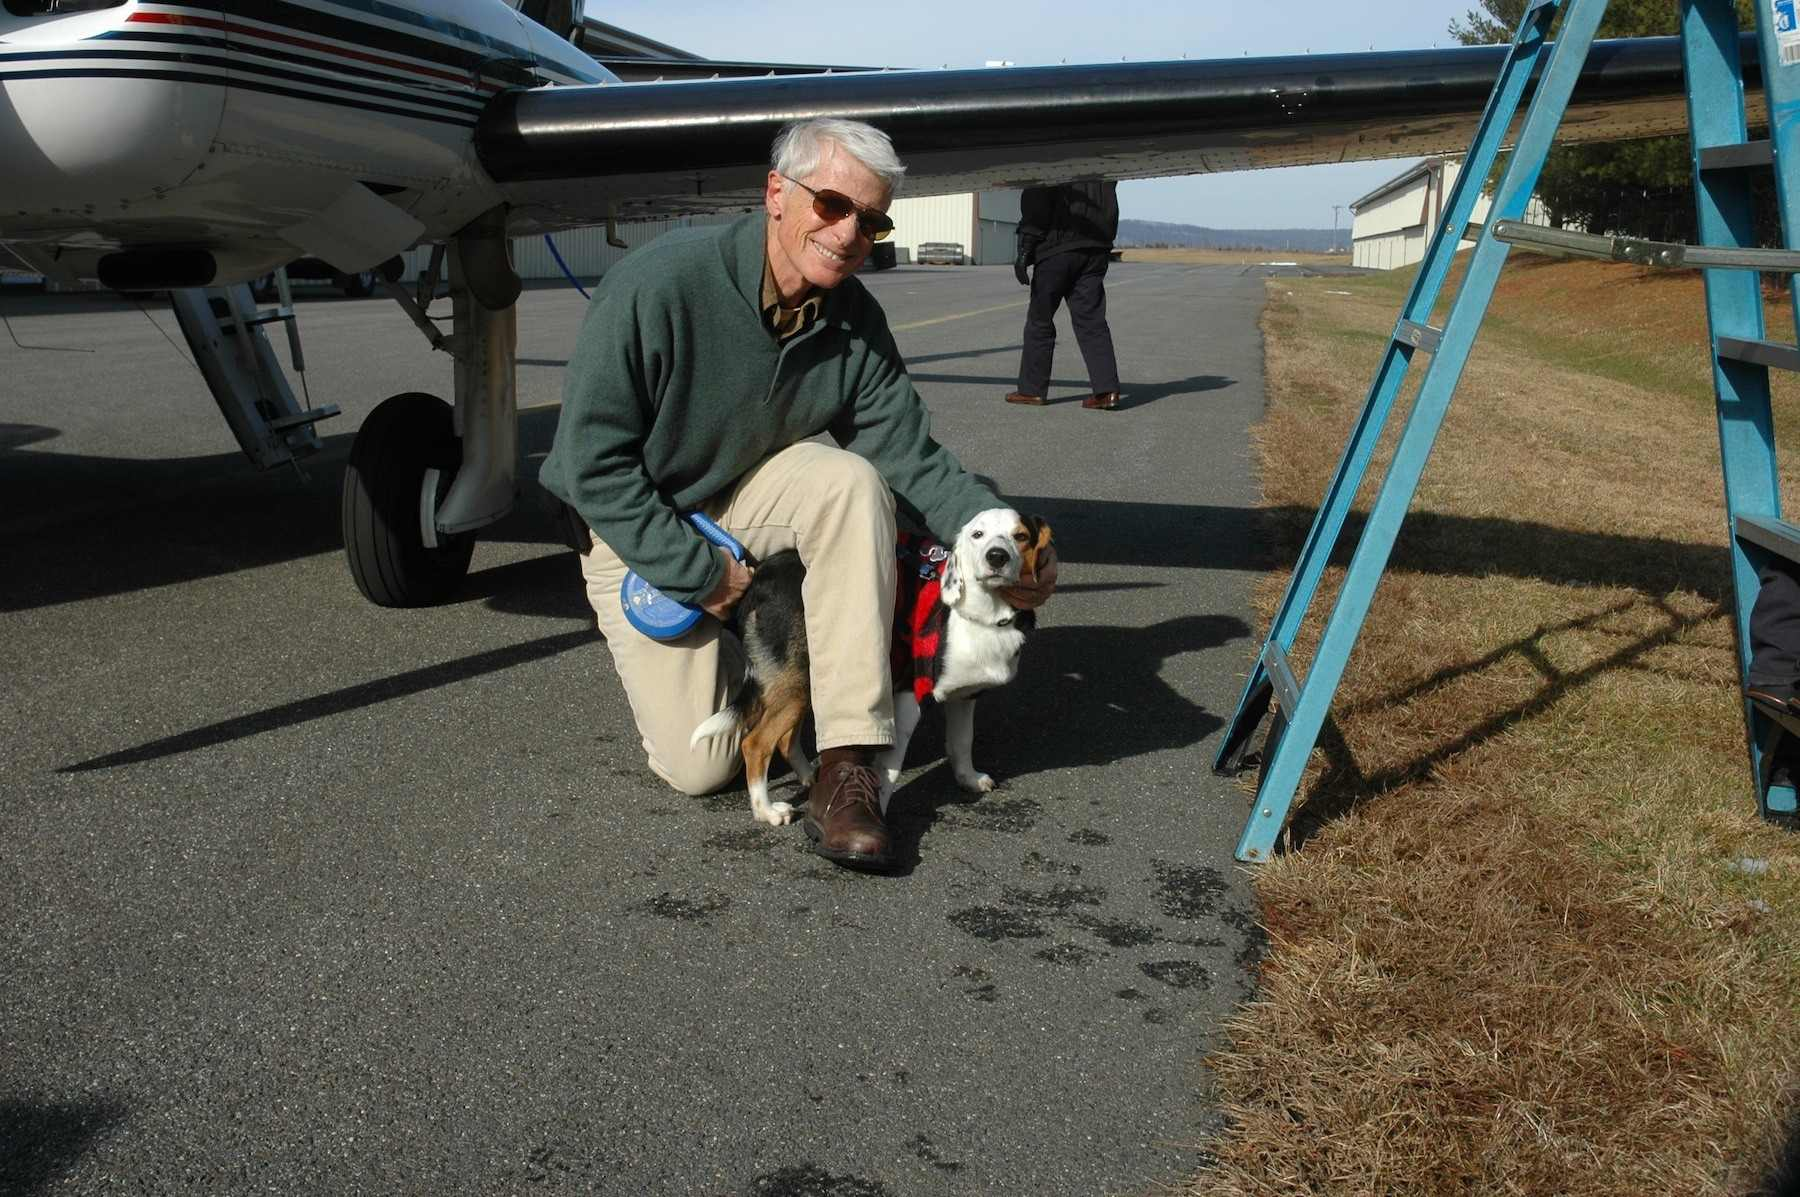 PNP Pilot Steve Shoop says goodbye to Dasher